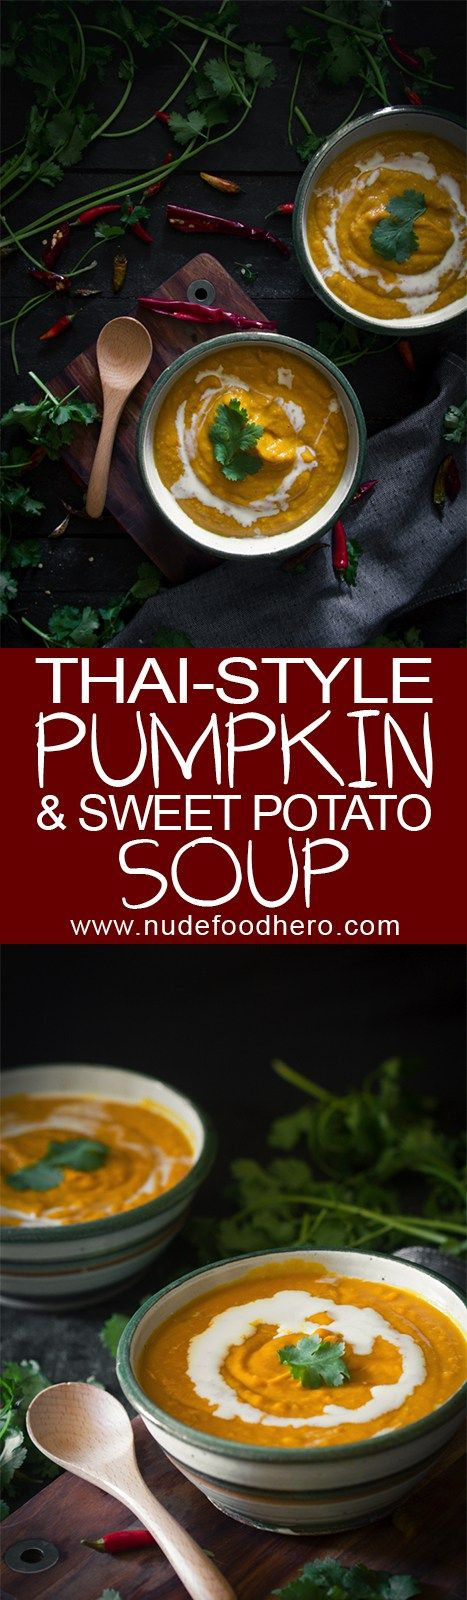 Satisfy your healthy comfort food cravings with this Thai pumpkin and sweet potato soup. Quick, easy and delicious!